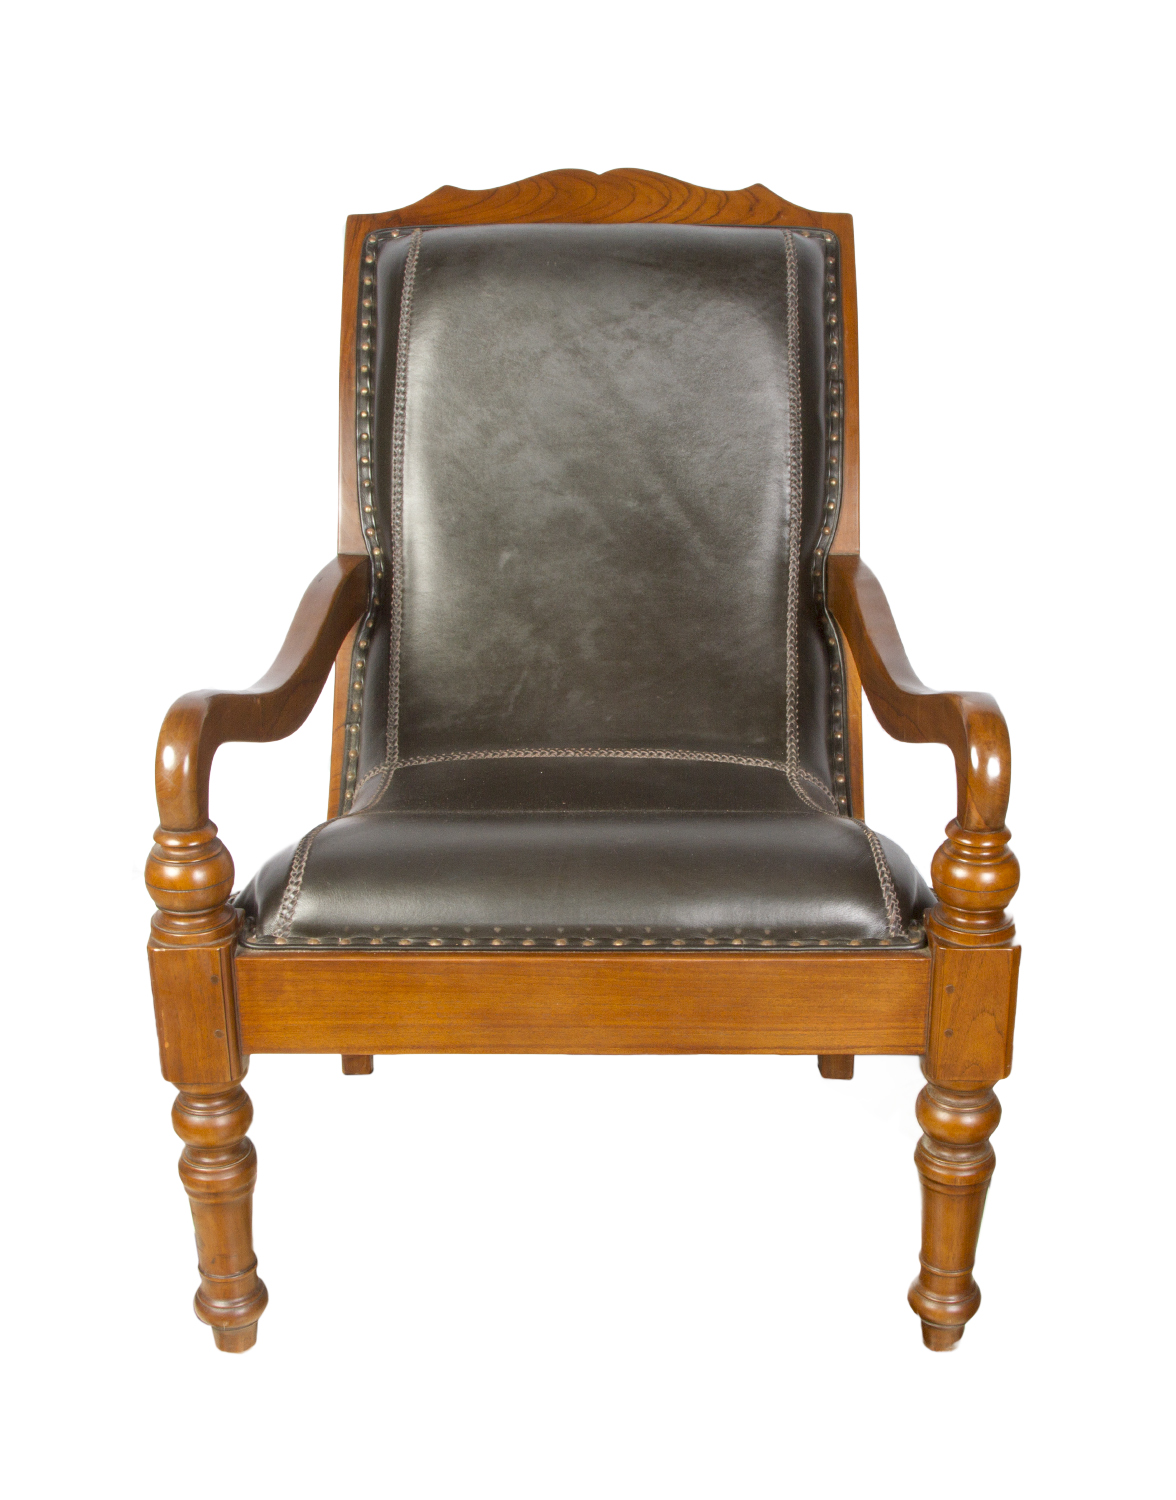 Plantation chair in teak wood and leather